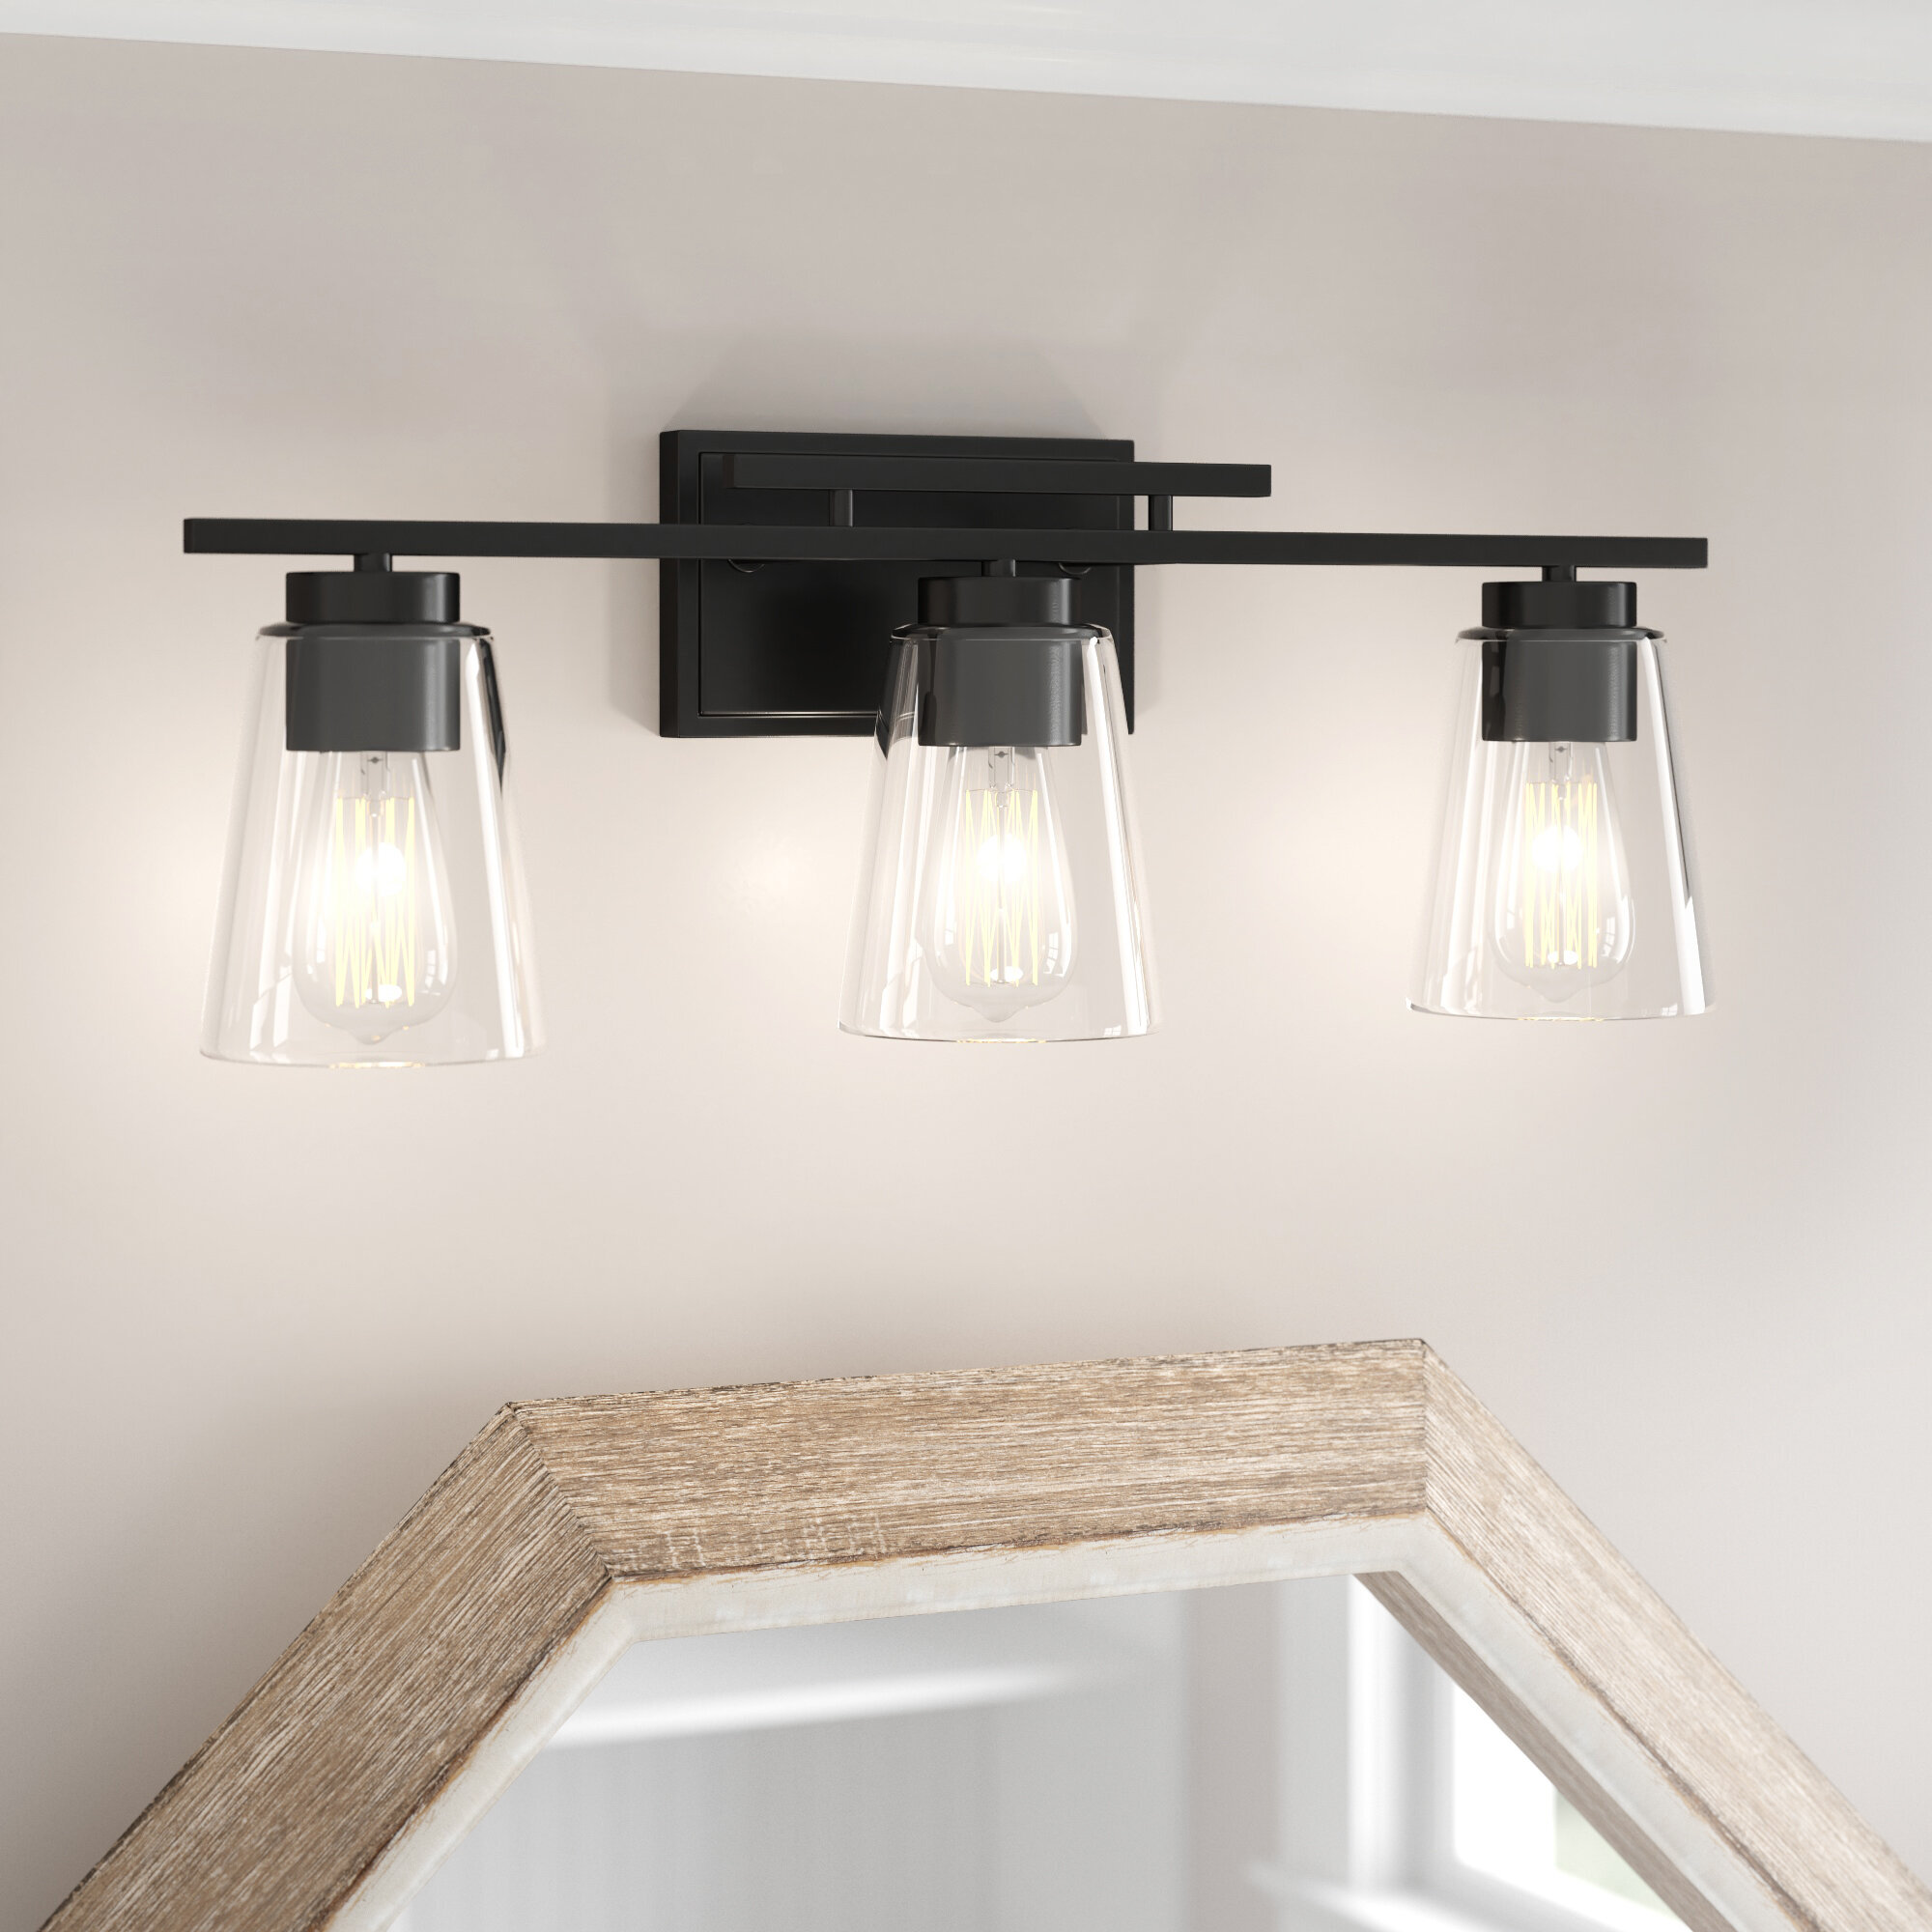 3 Light Black Bathroom Vanity Lighting You Ll Love In 2021 Wayfair